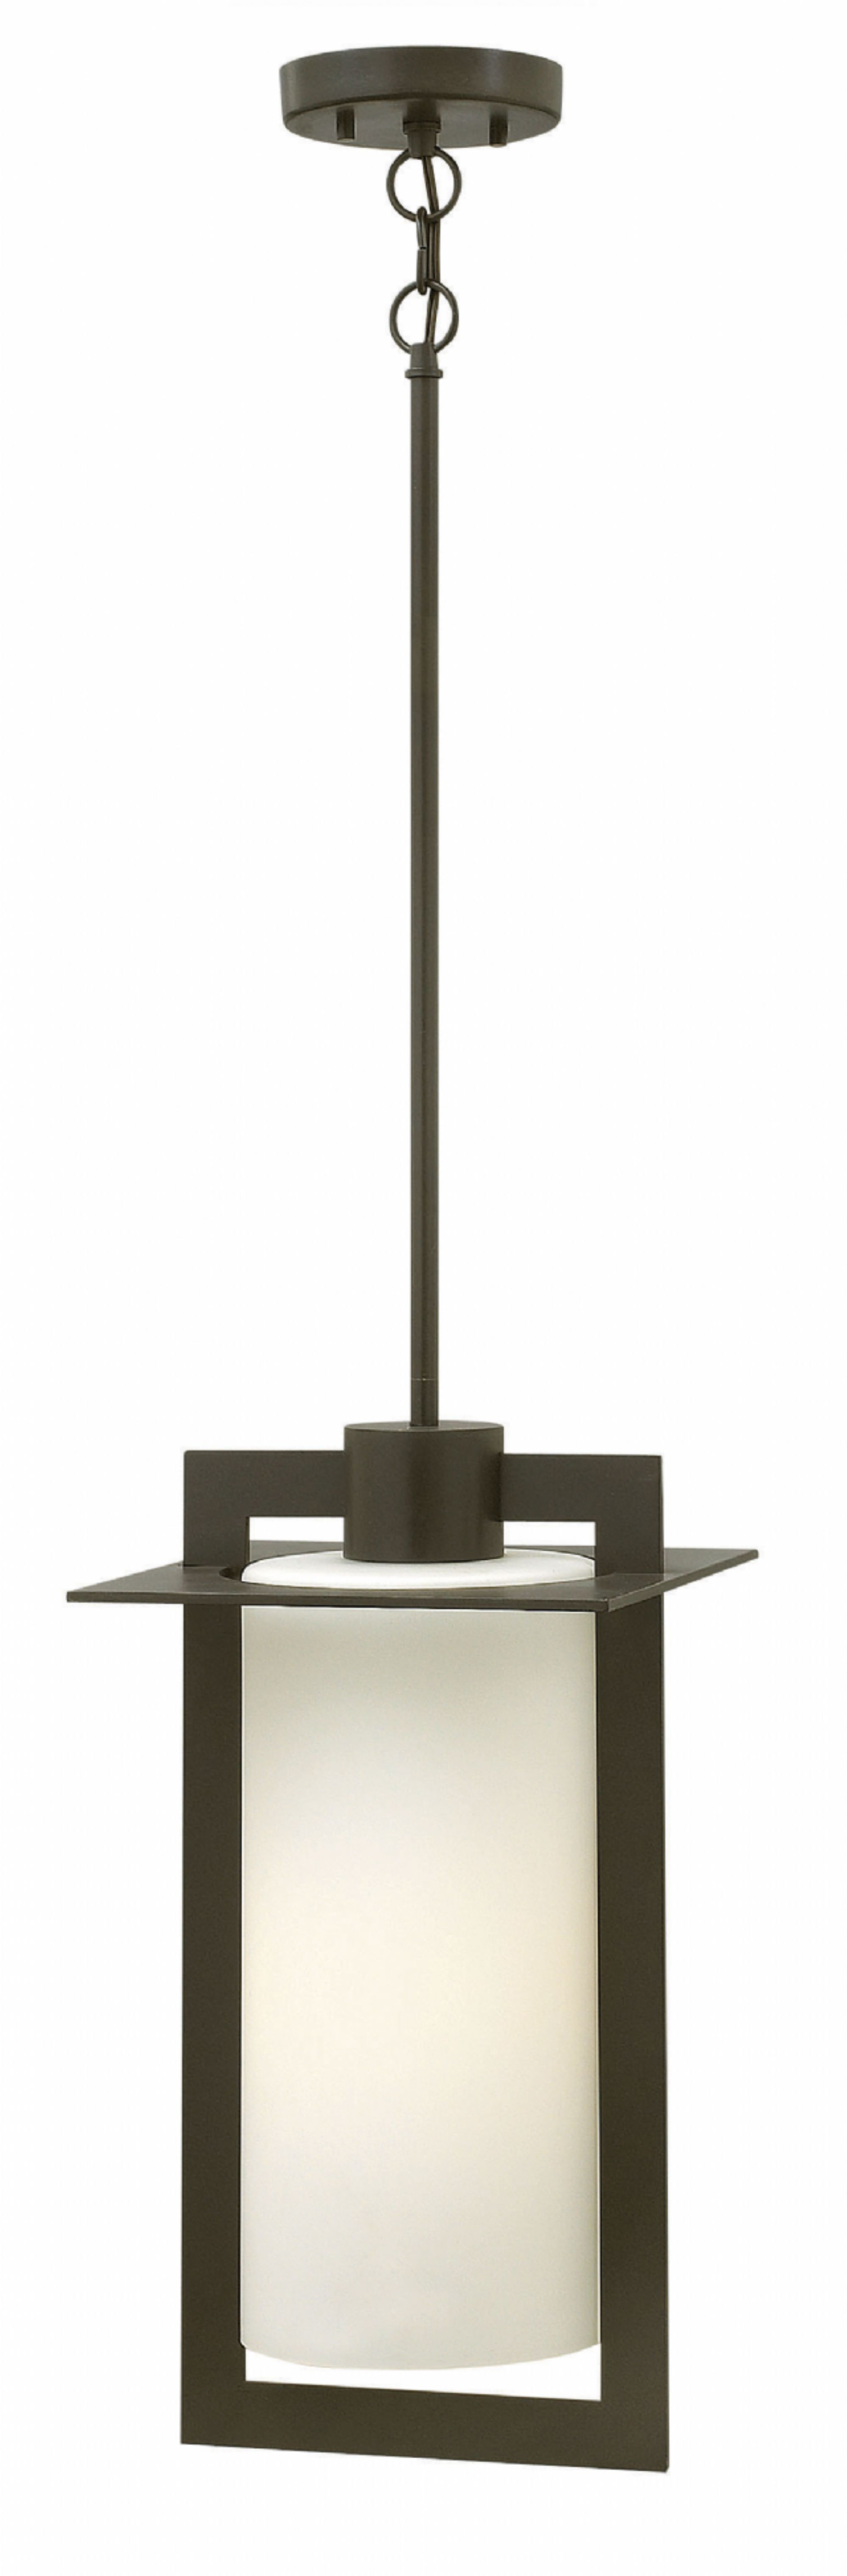 outdoor pendant lighting modern. check out the huge savings on new hinkley colfax outdoor pendant light bronze at lampsusa best products discount pricing lighting modern